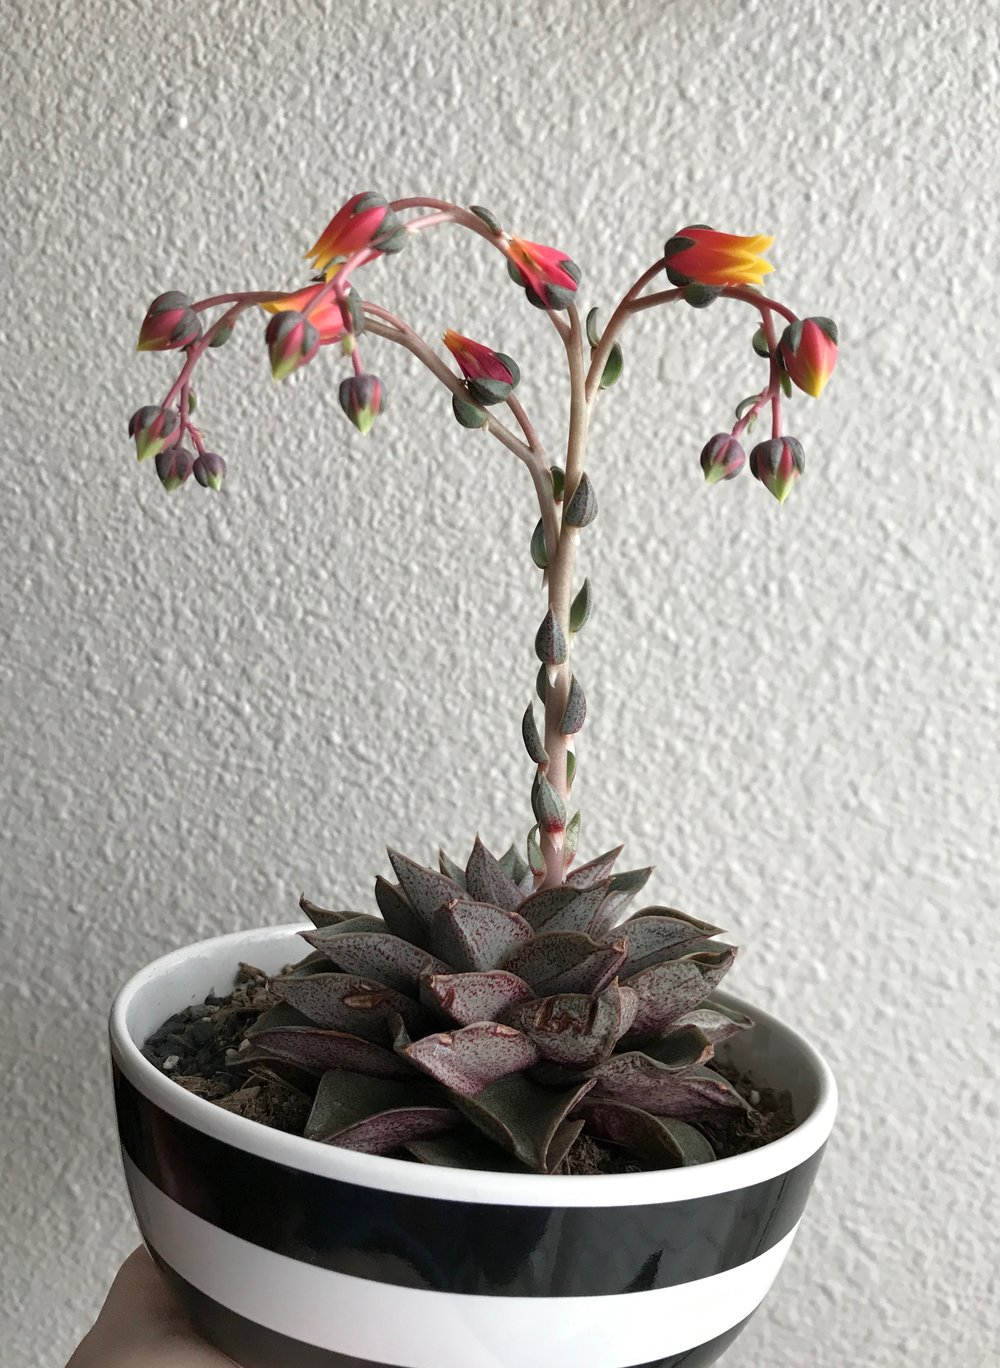 what about succulents? - Succulents and cacti require a lower concentration of N-P-K as their leaves are more water cells than leaf cells. Look for nitrogen less than 2.(shown: Echeveria Purpusorum)